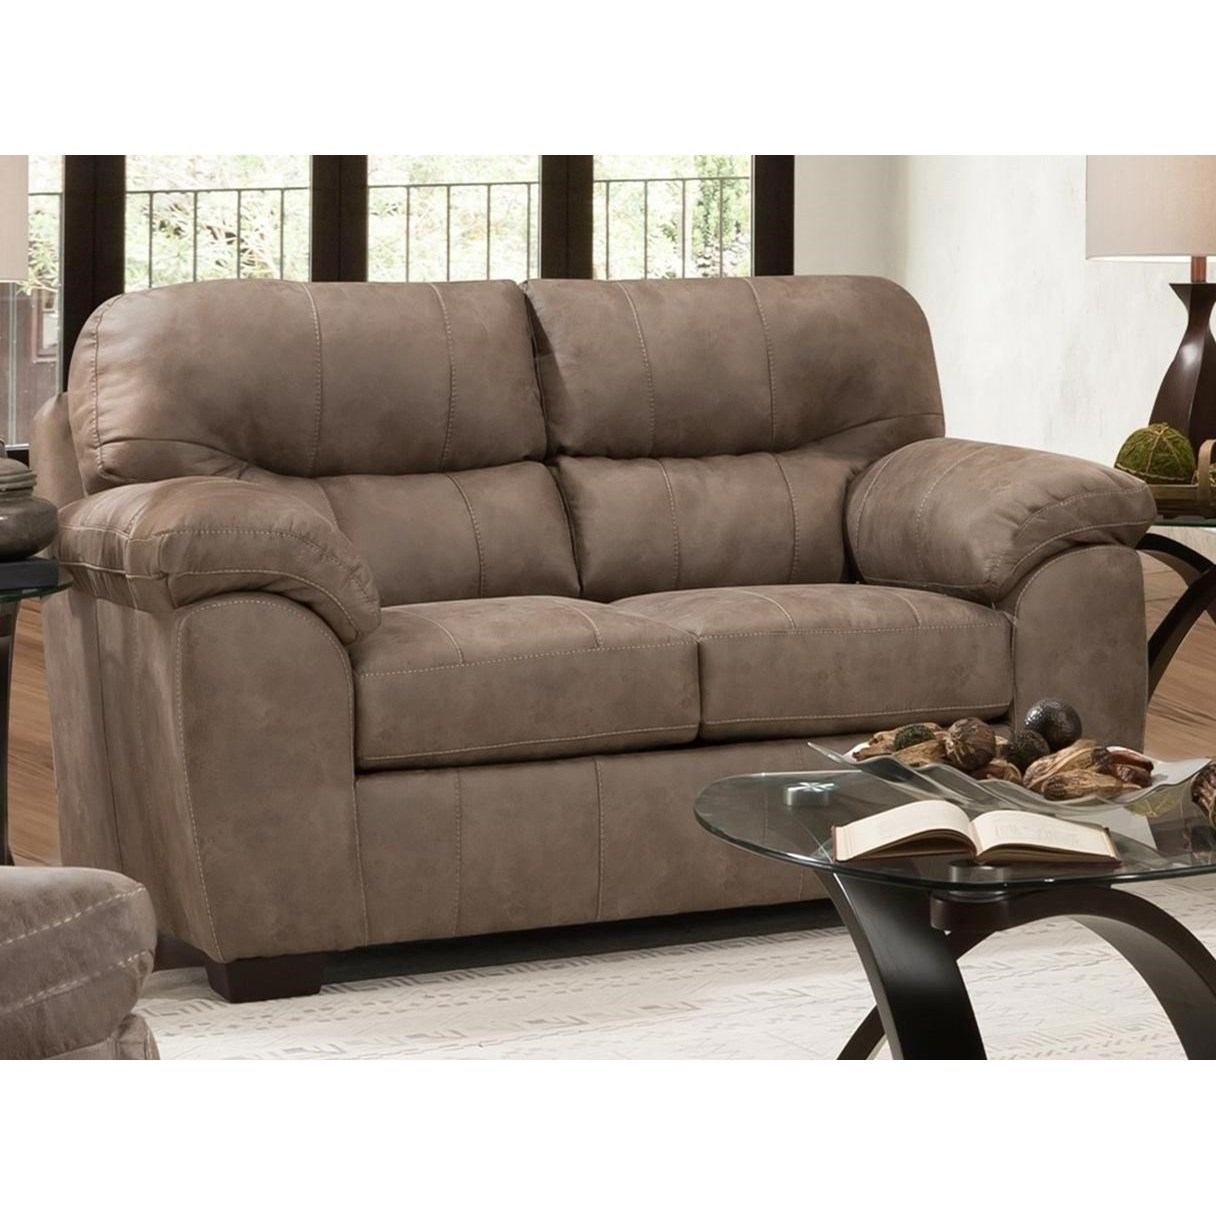 1780 Loveseat by Peak Living at Prime Brothers Furniture